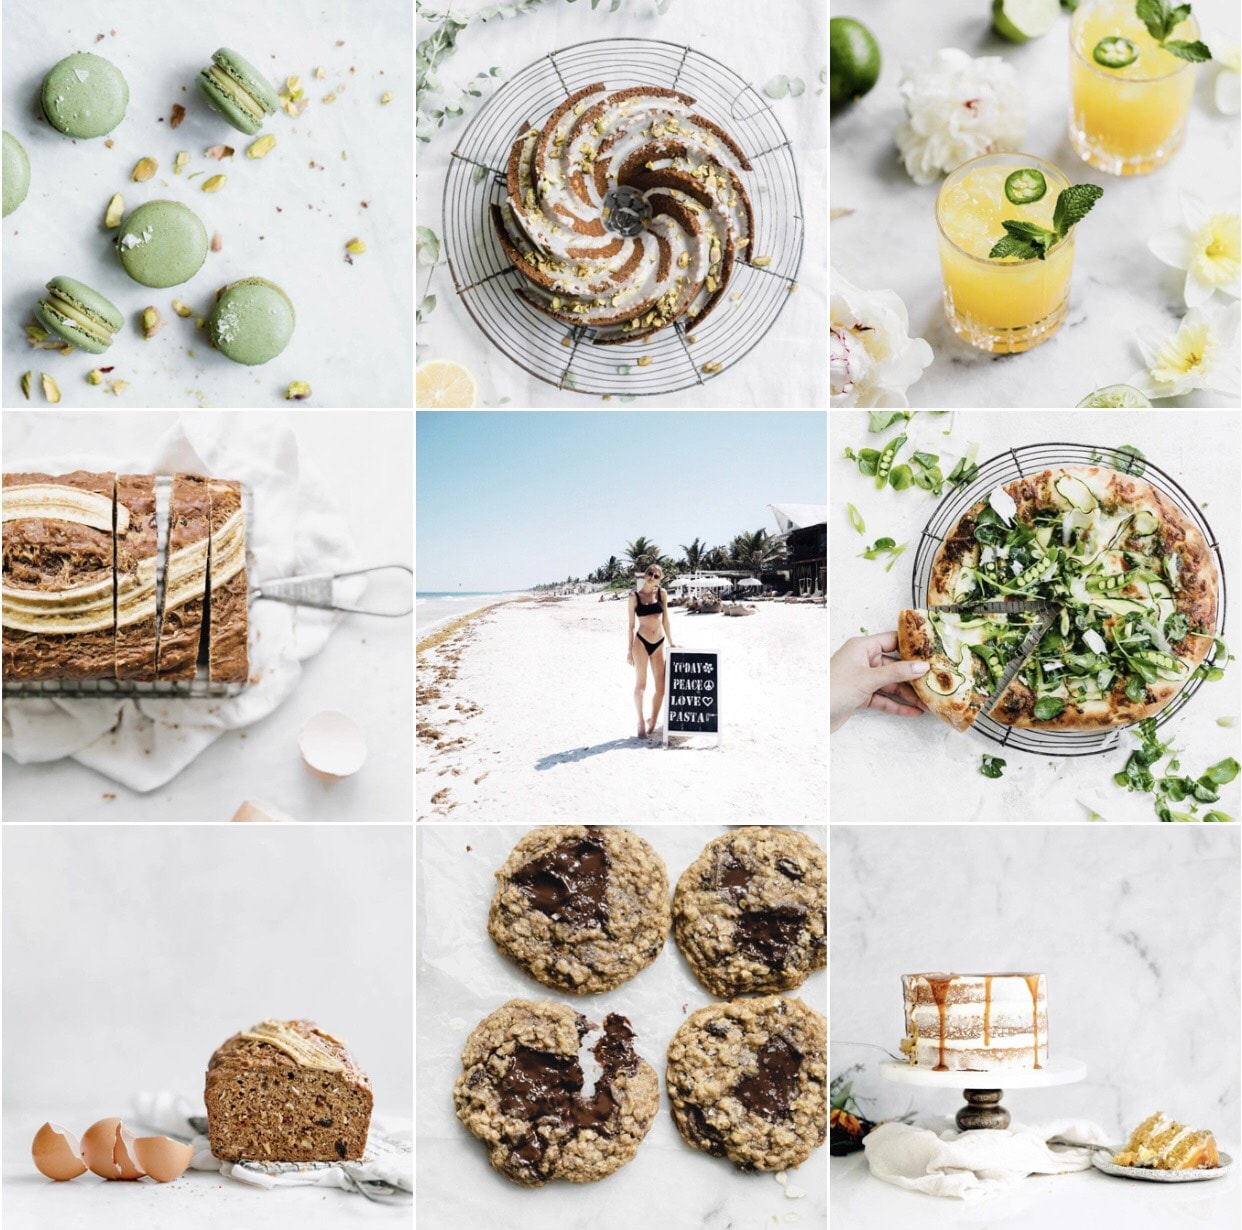 6 Ways to Curate the Perfect Food Instagram Feed